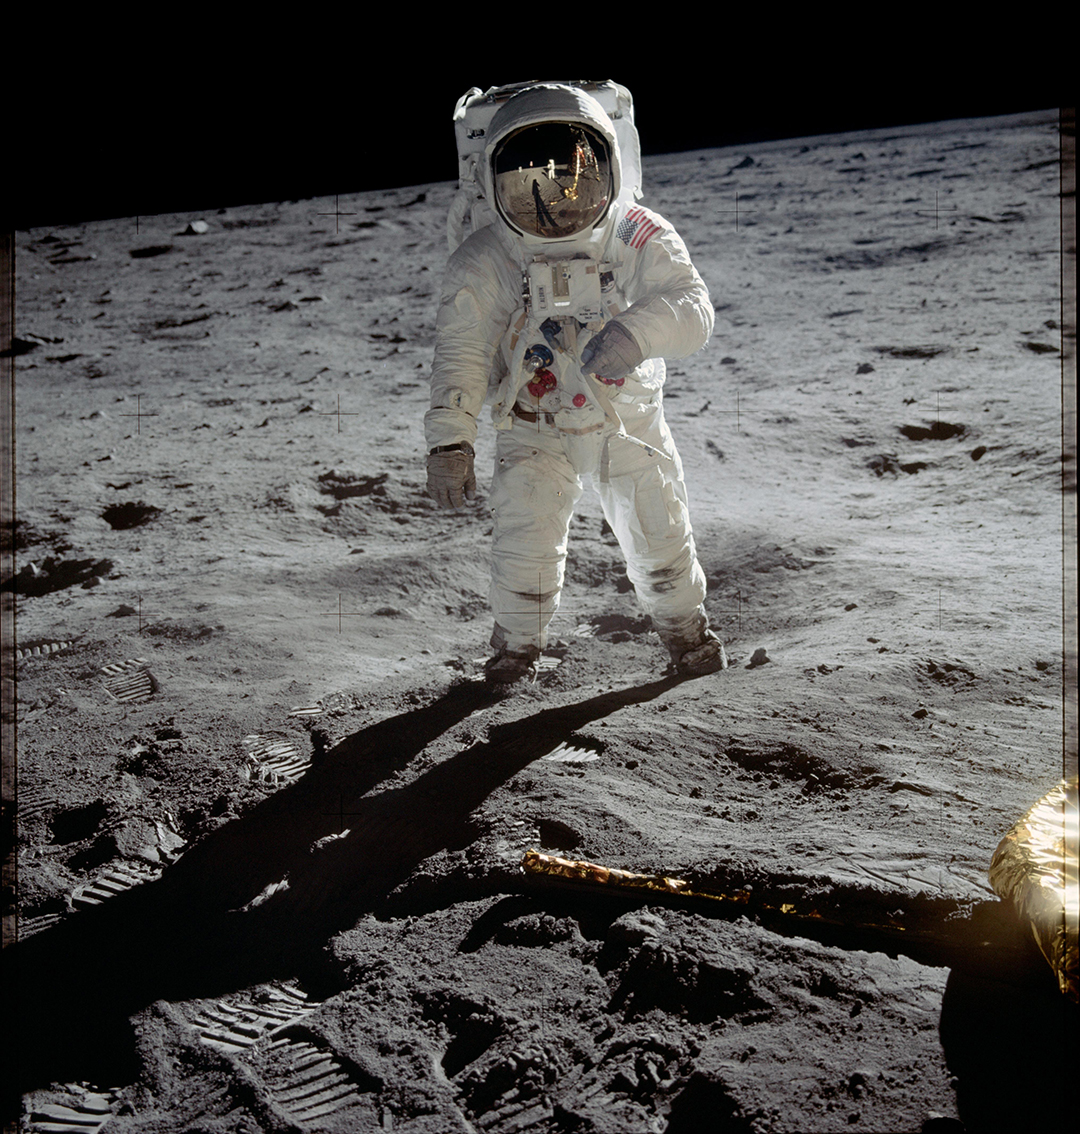 Astronaut Buzz Aldrin walks on the surface of the Moon near the leg of the lunar module Eagle during the Apollo 11 mission. Mission commander Neil Armstrong took this photograph with a 70 mm lunar surface camera, in 1969.